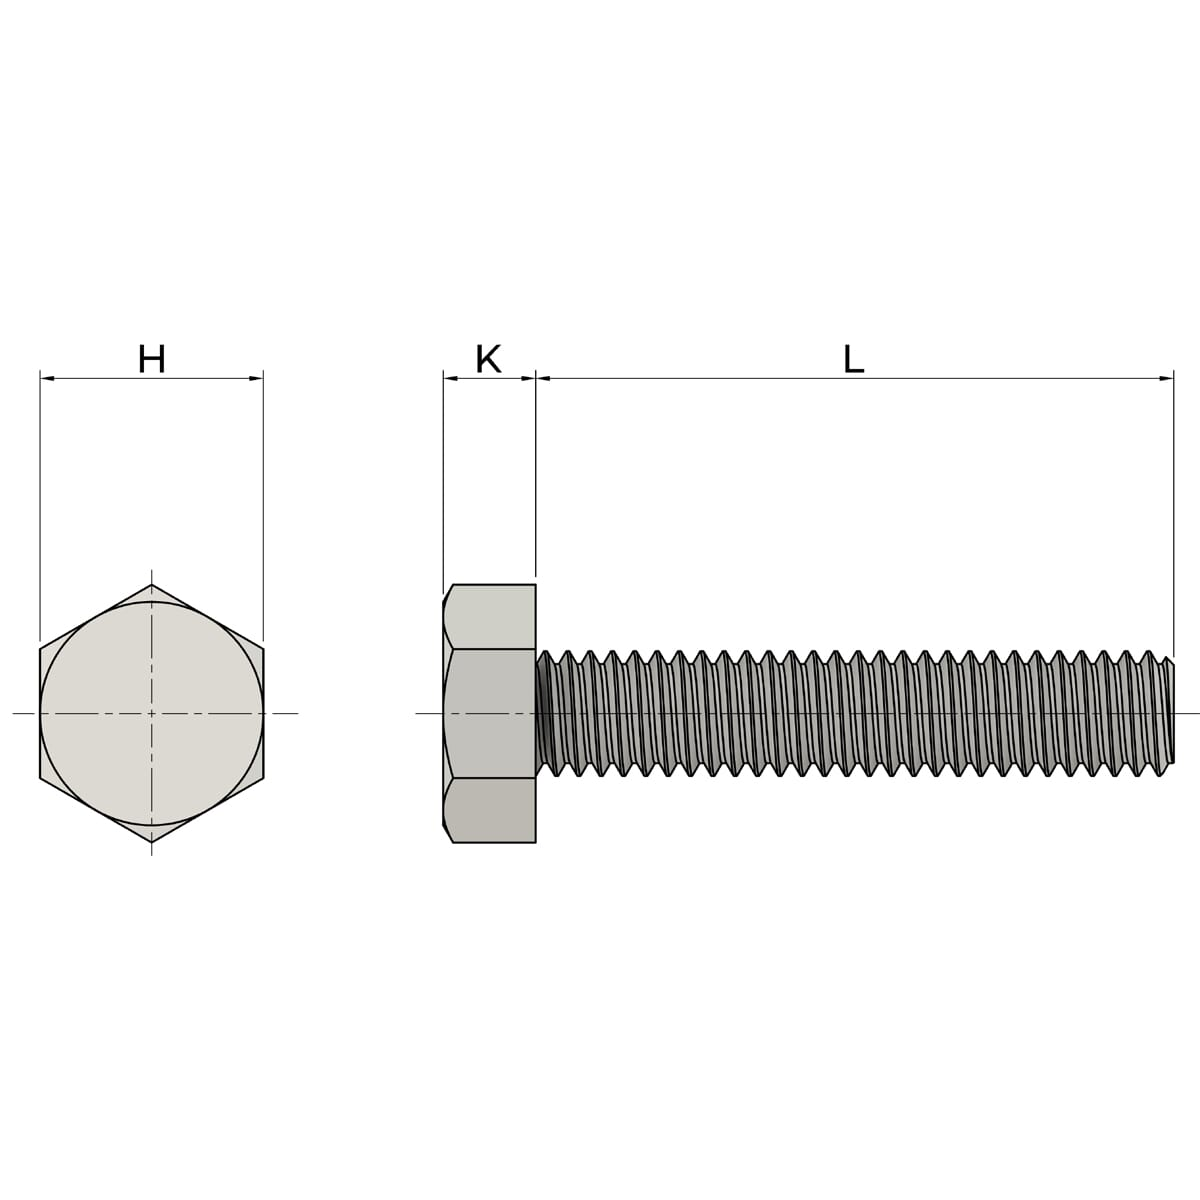 M4 x 10mm Full Thread Hexagon Bolts (DIN 933) - High Tensile Stainless Steel (A4-80) Drawing